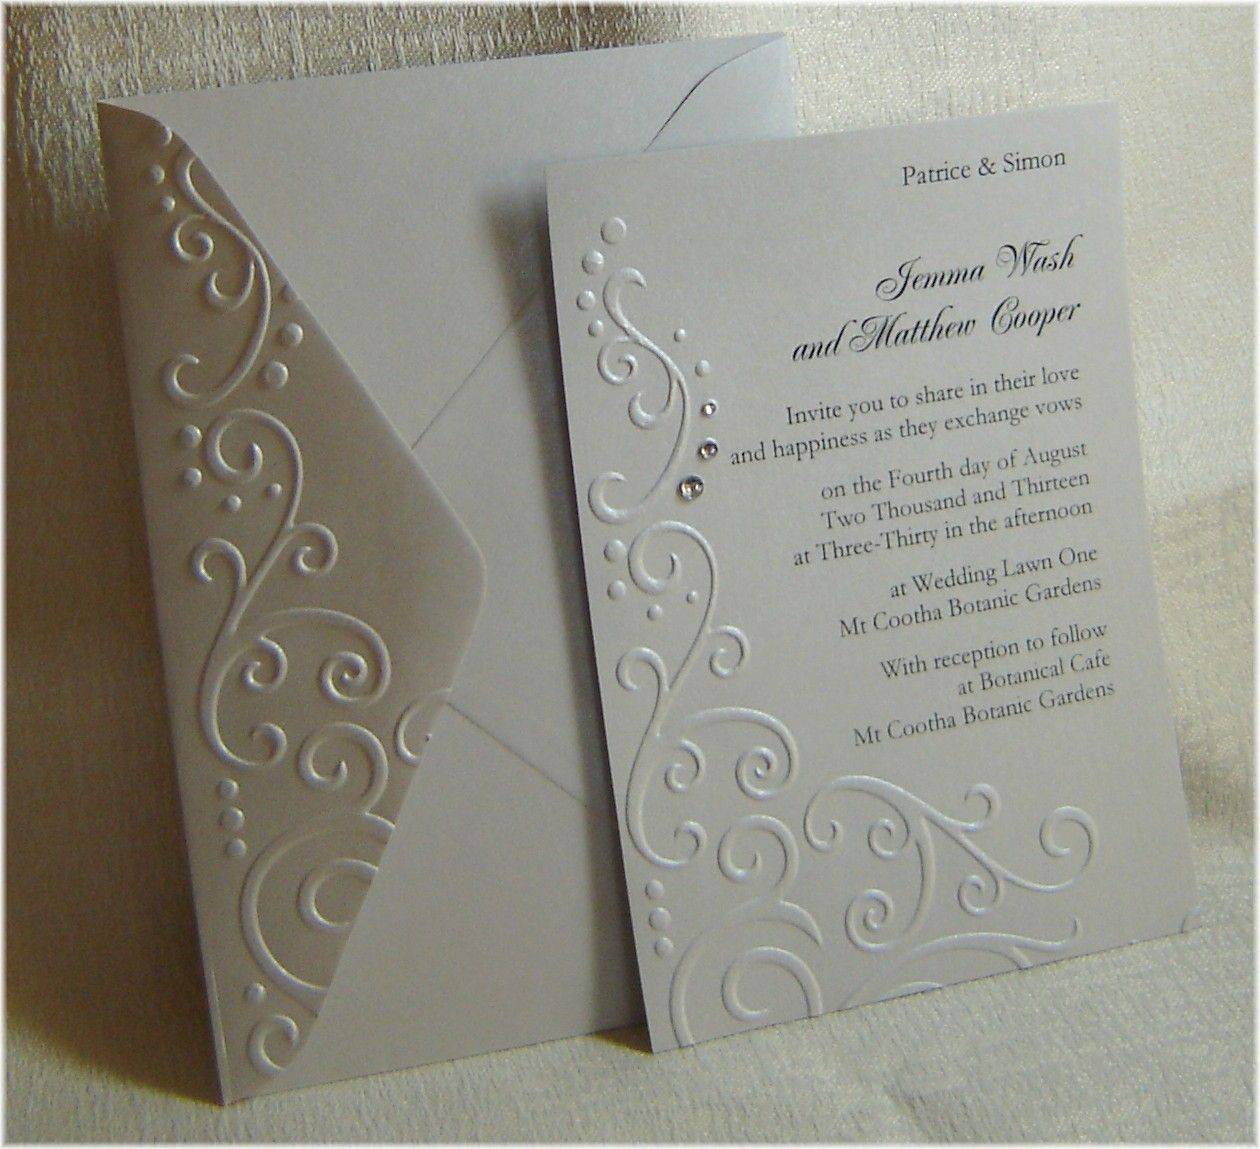 Embossed Wedding Invitations | Party: Invitations | Pinterest ...